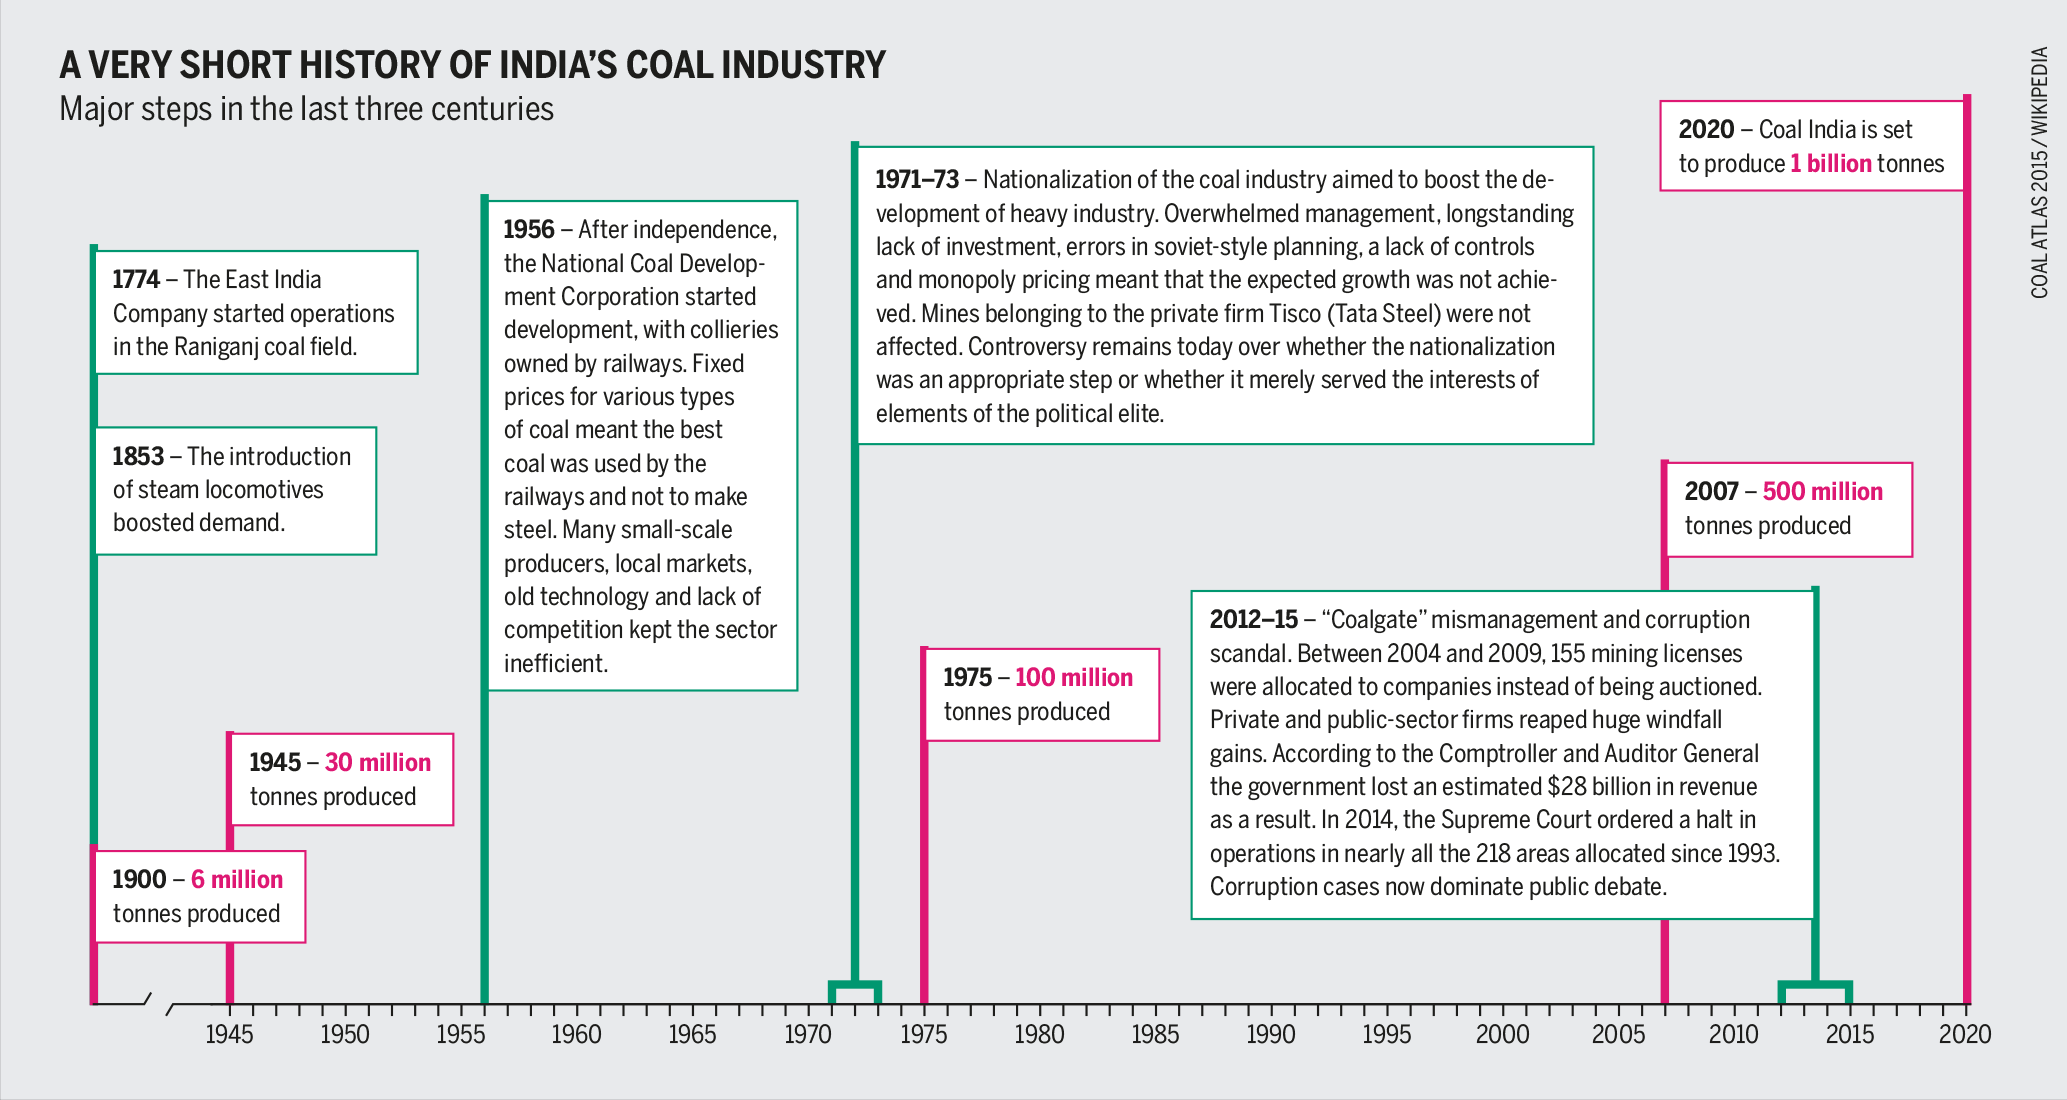 history of indian energy sector Energy in india describes energy and electricity production, consumption and import in india energy policy of india describes the policies and strategies of india for achieving sustainable energy security to its people electricity sector in india is the main article of electricity in india.